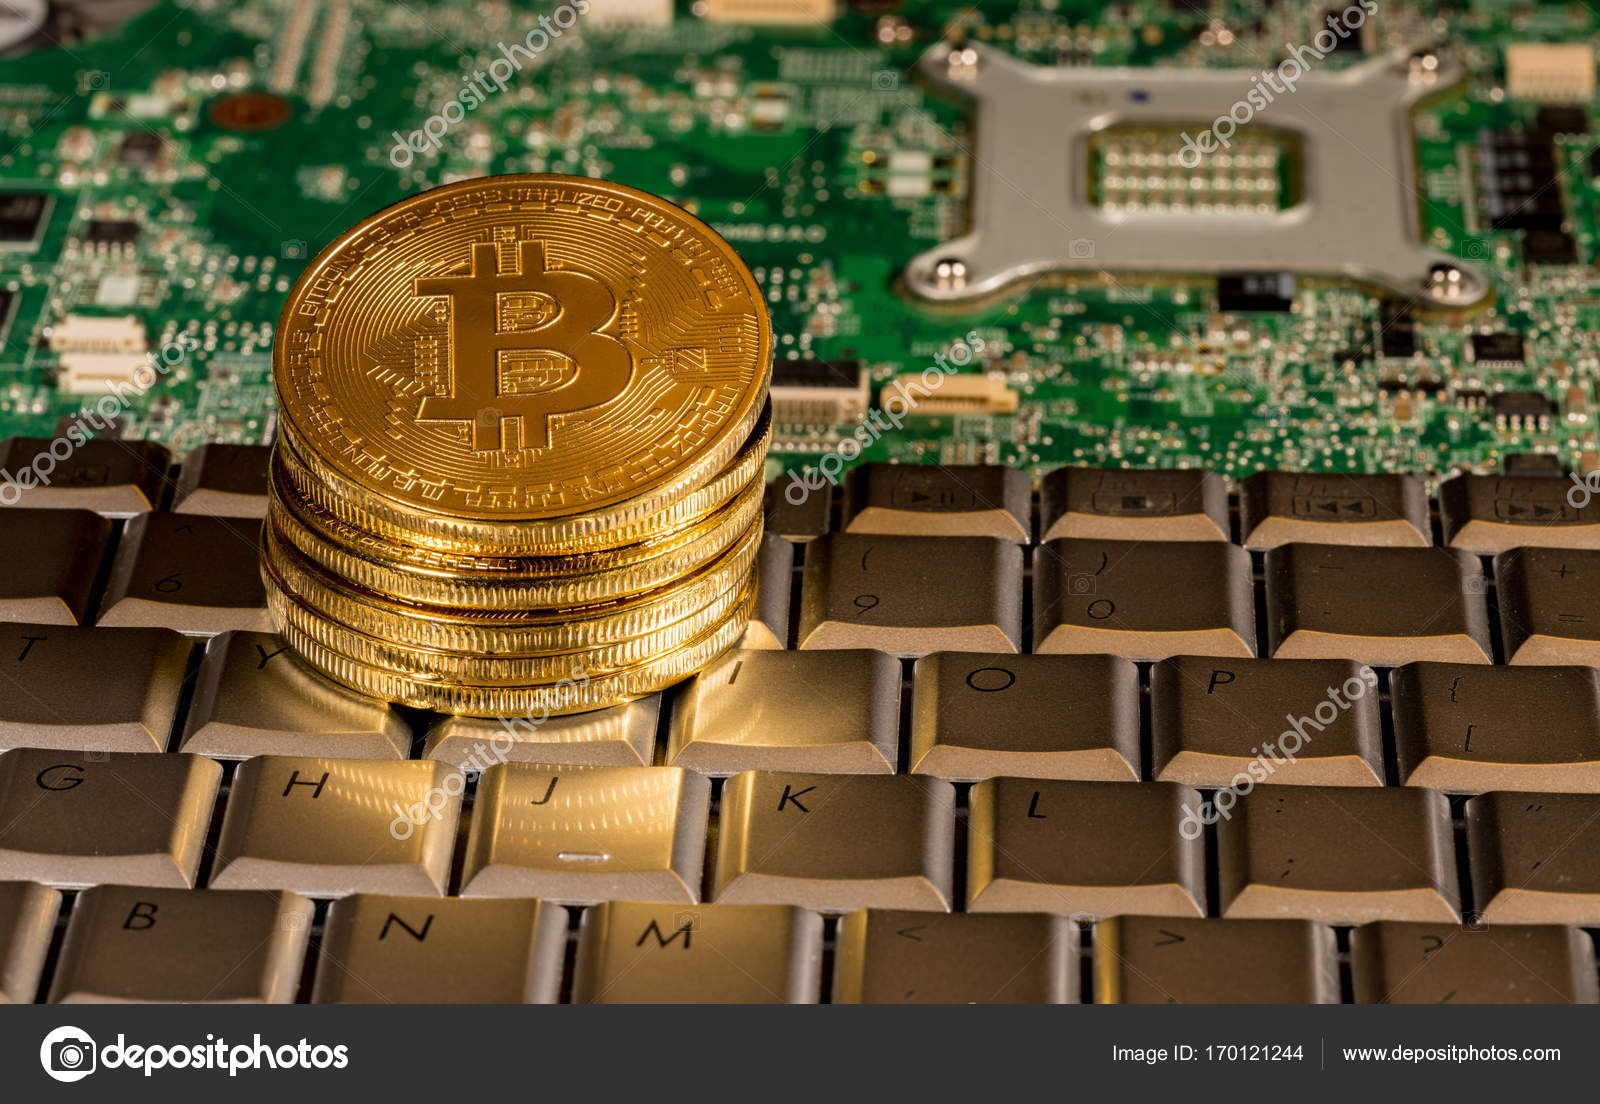 Bitcoin On A Keyboard With Printed Circuit Board Stock Editorial Electronic Royalty Free Photography Photo Coin Computer To Illustrate Blockchain And Cyber Currency By Steveheap